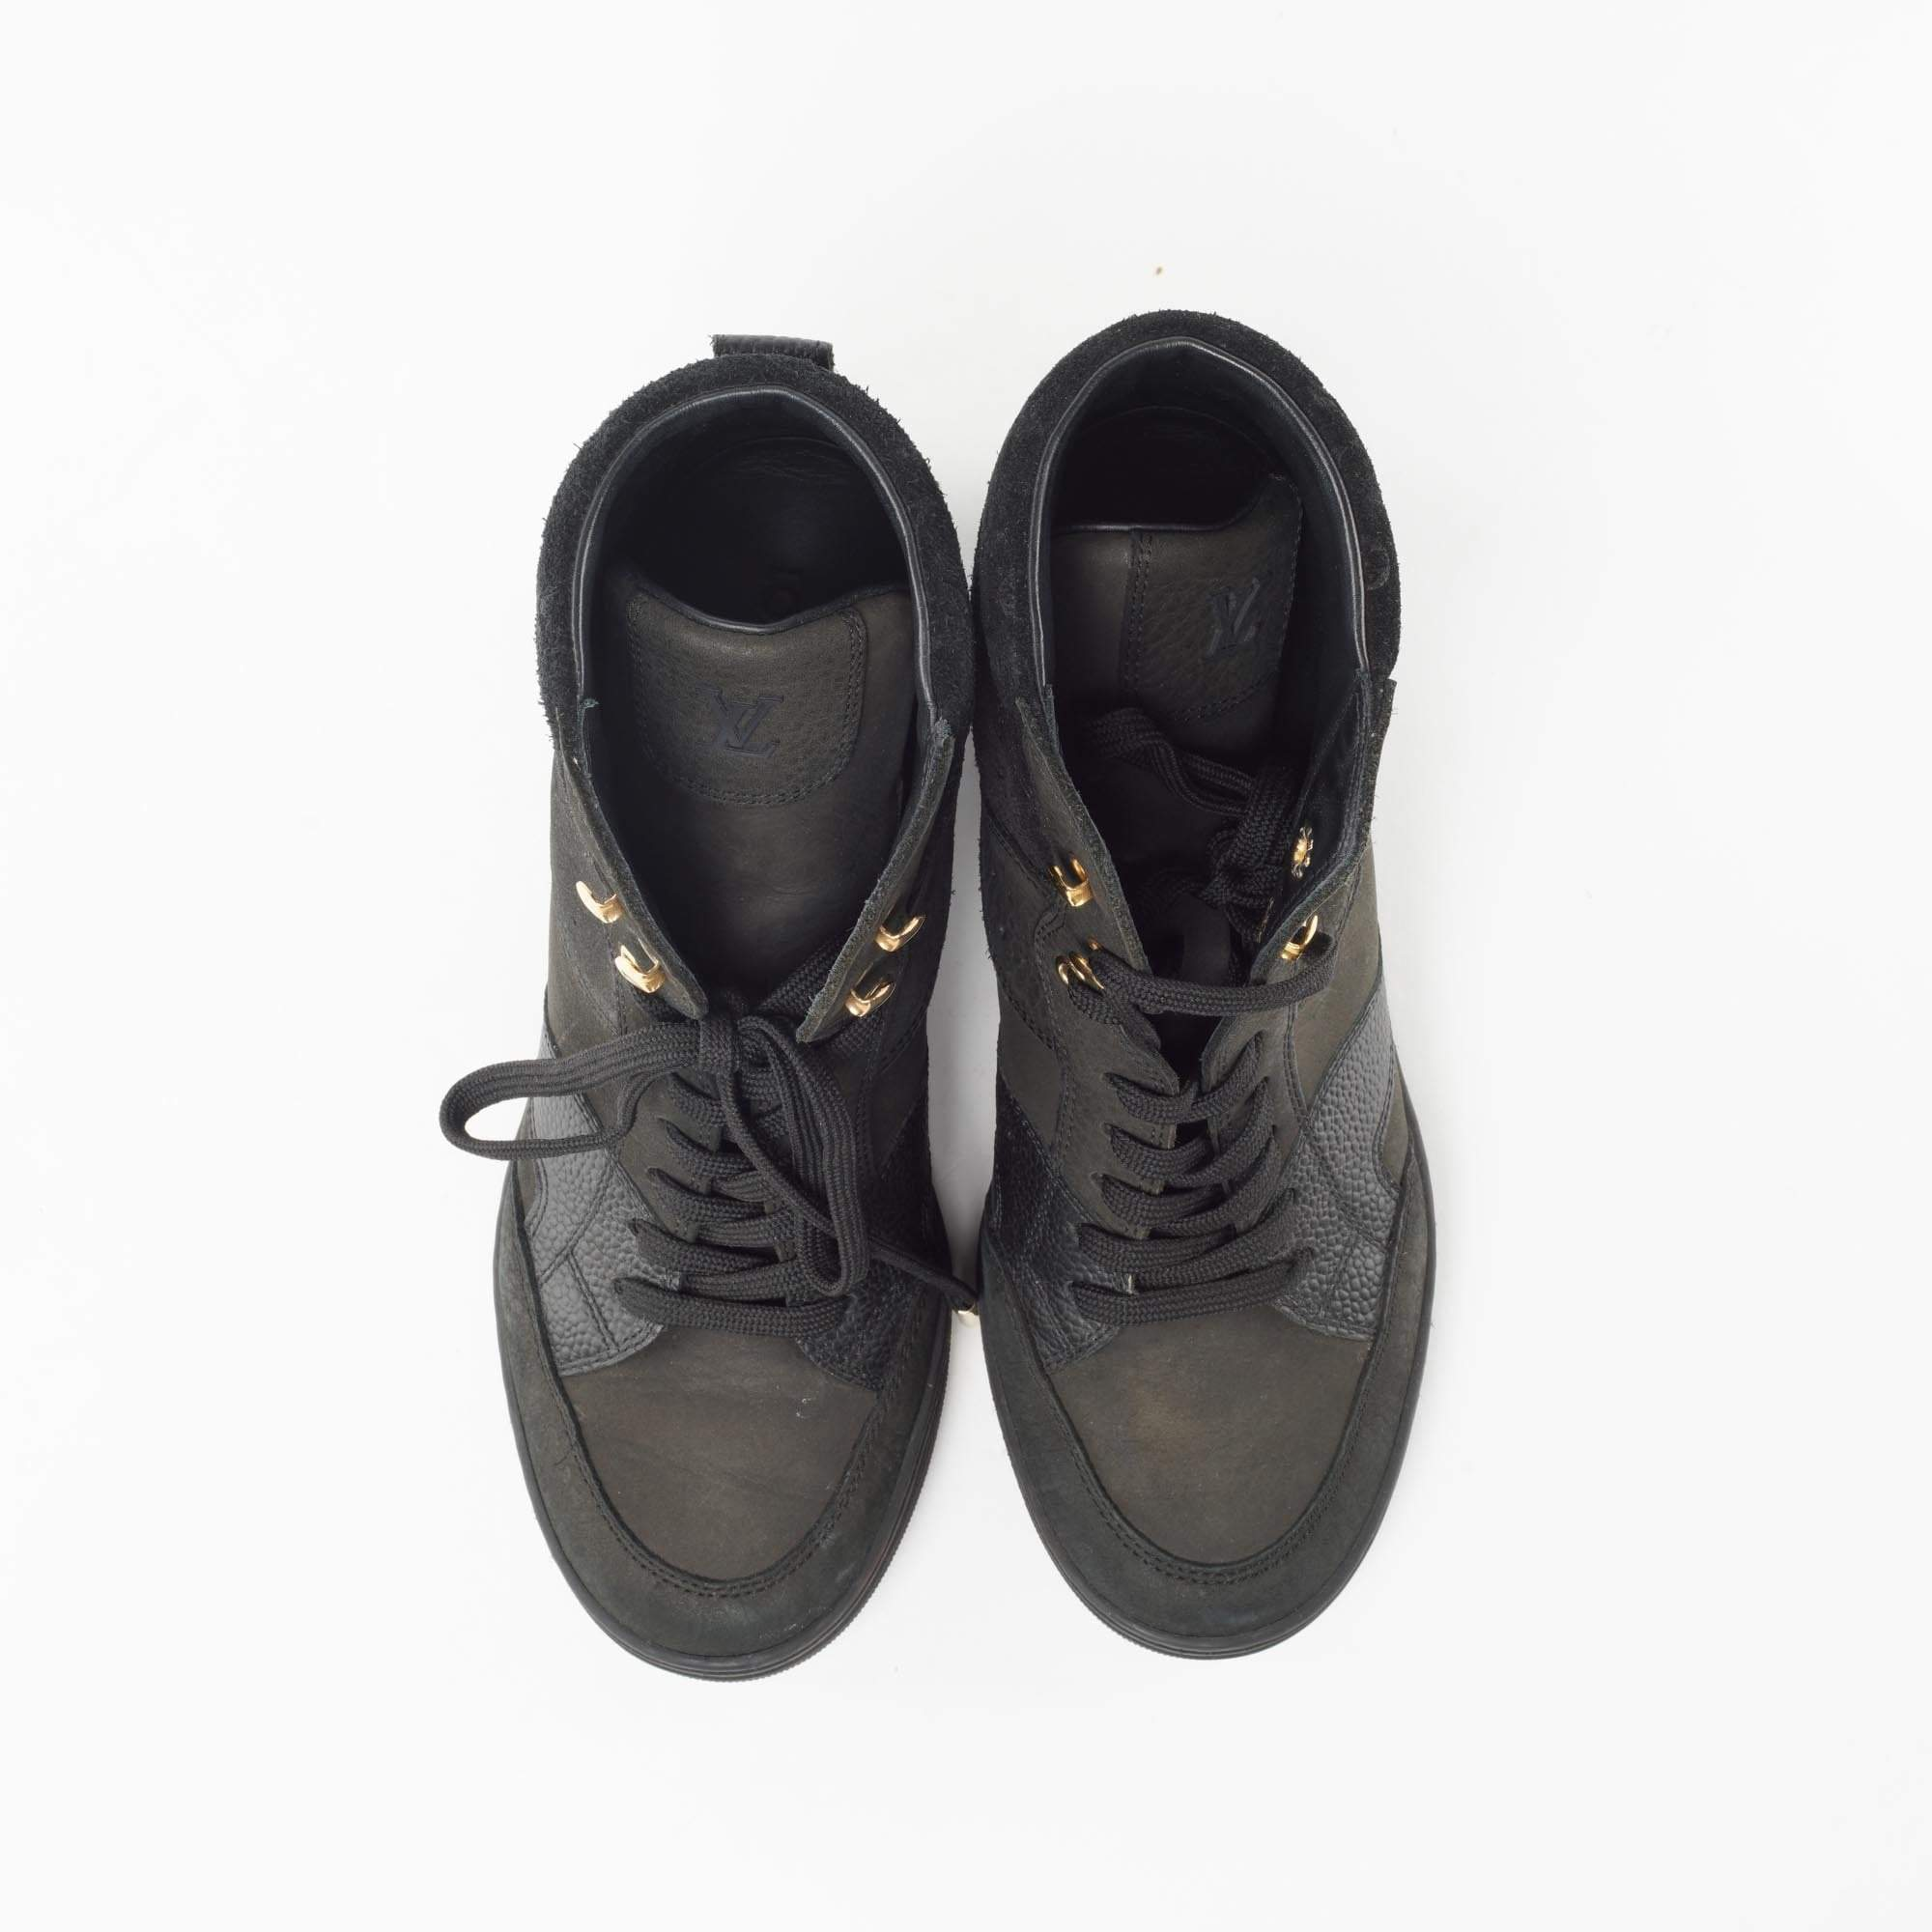 Louis Vuitton Black Leather Cliff Top Sneaker Wedges